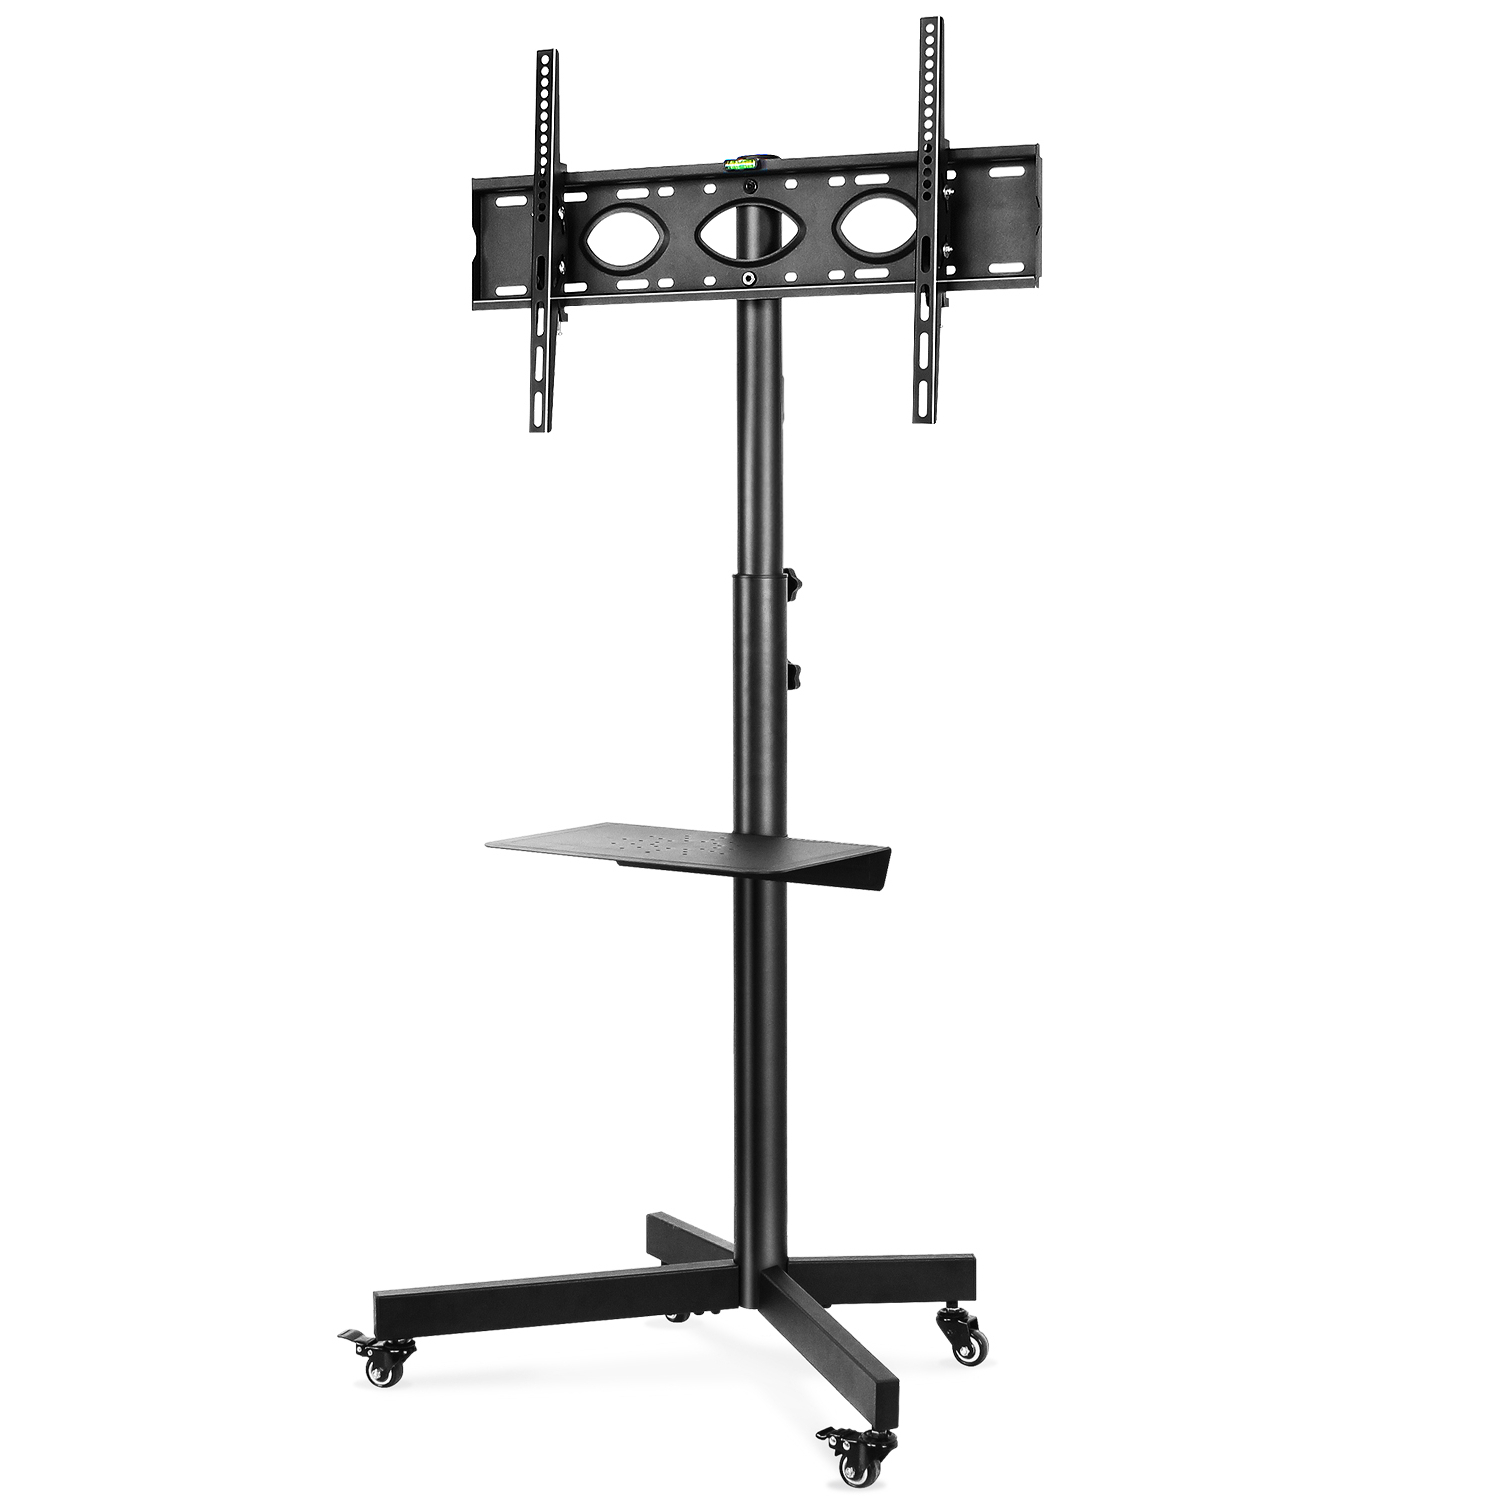 5rcom Mobile Adjustable Floor Tv Stand Cart For Tvs Up To With Regard To Rolling Tv Cart Mobile Tv Stands With Lockable Wheels (View 10 of 20)